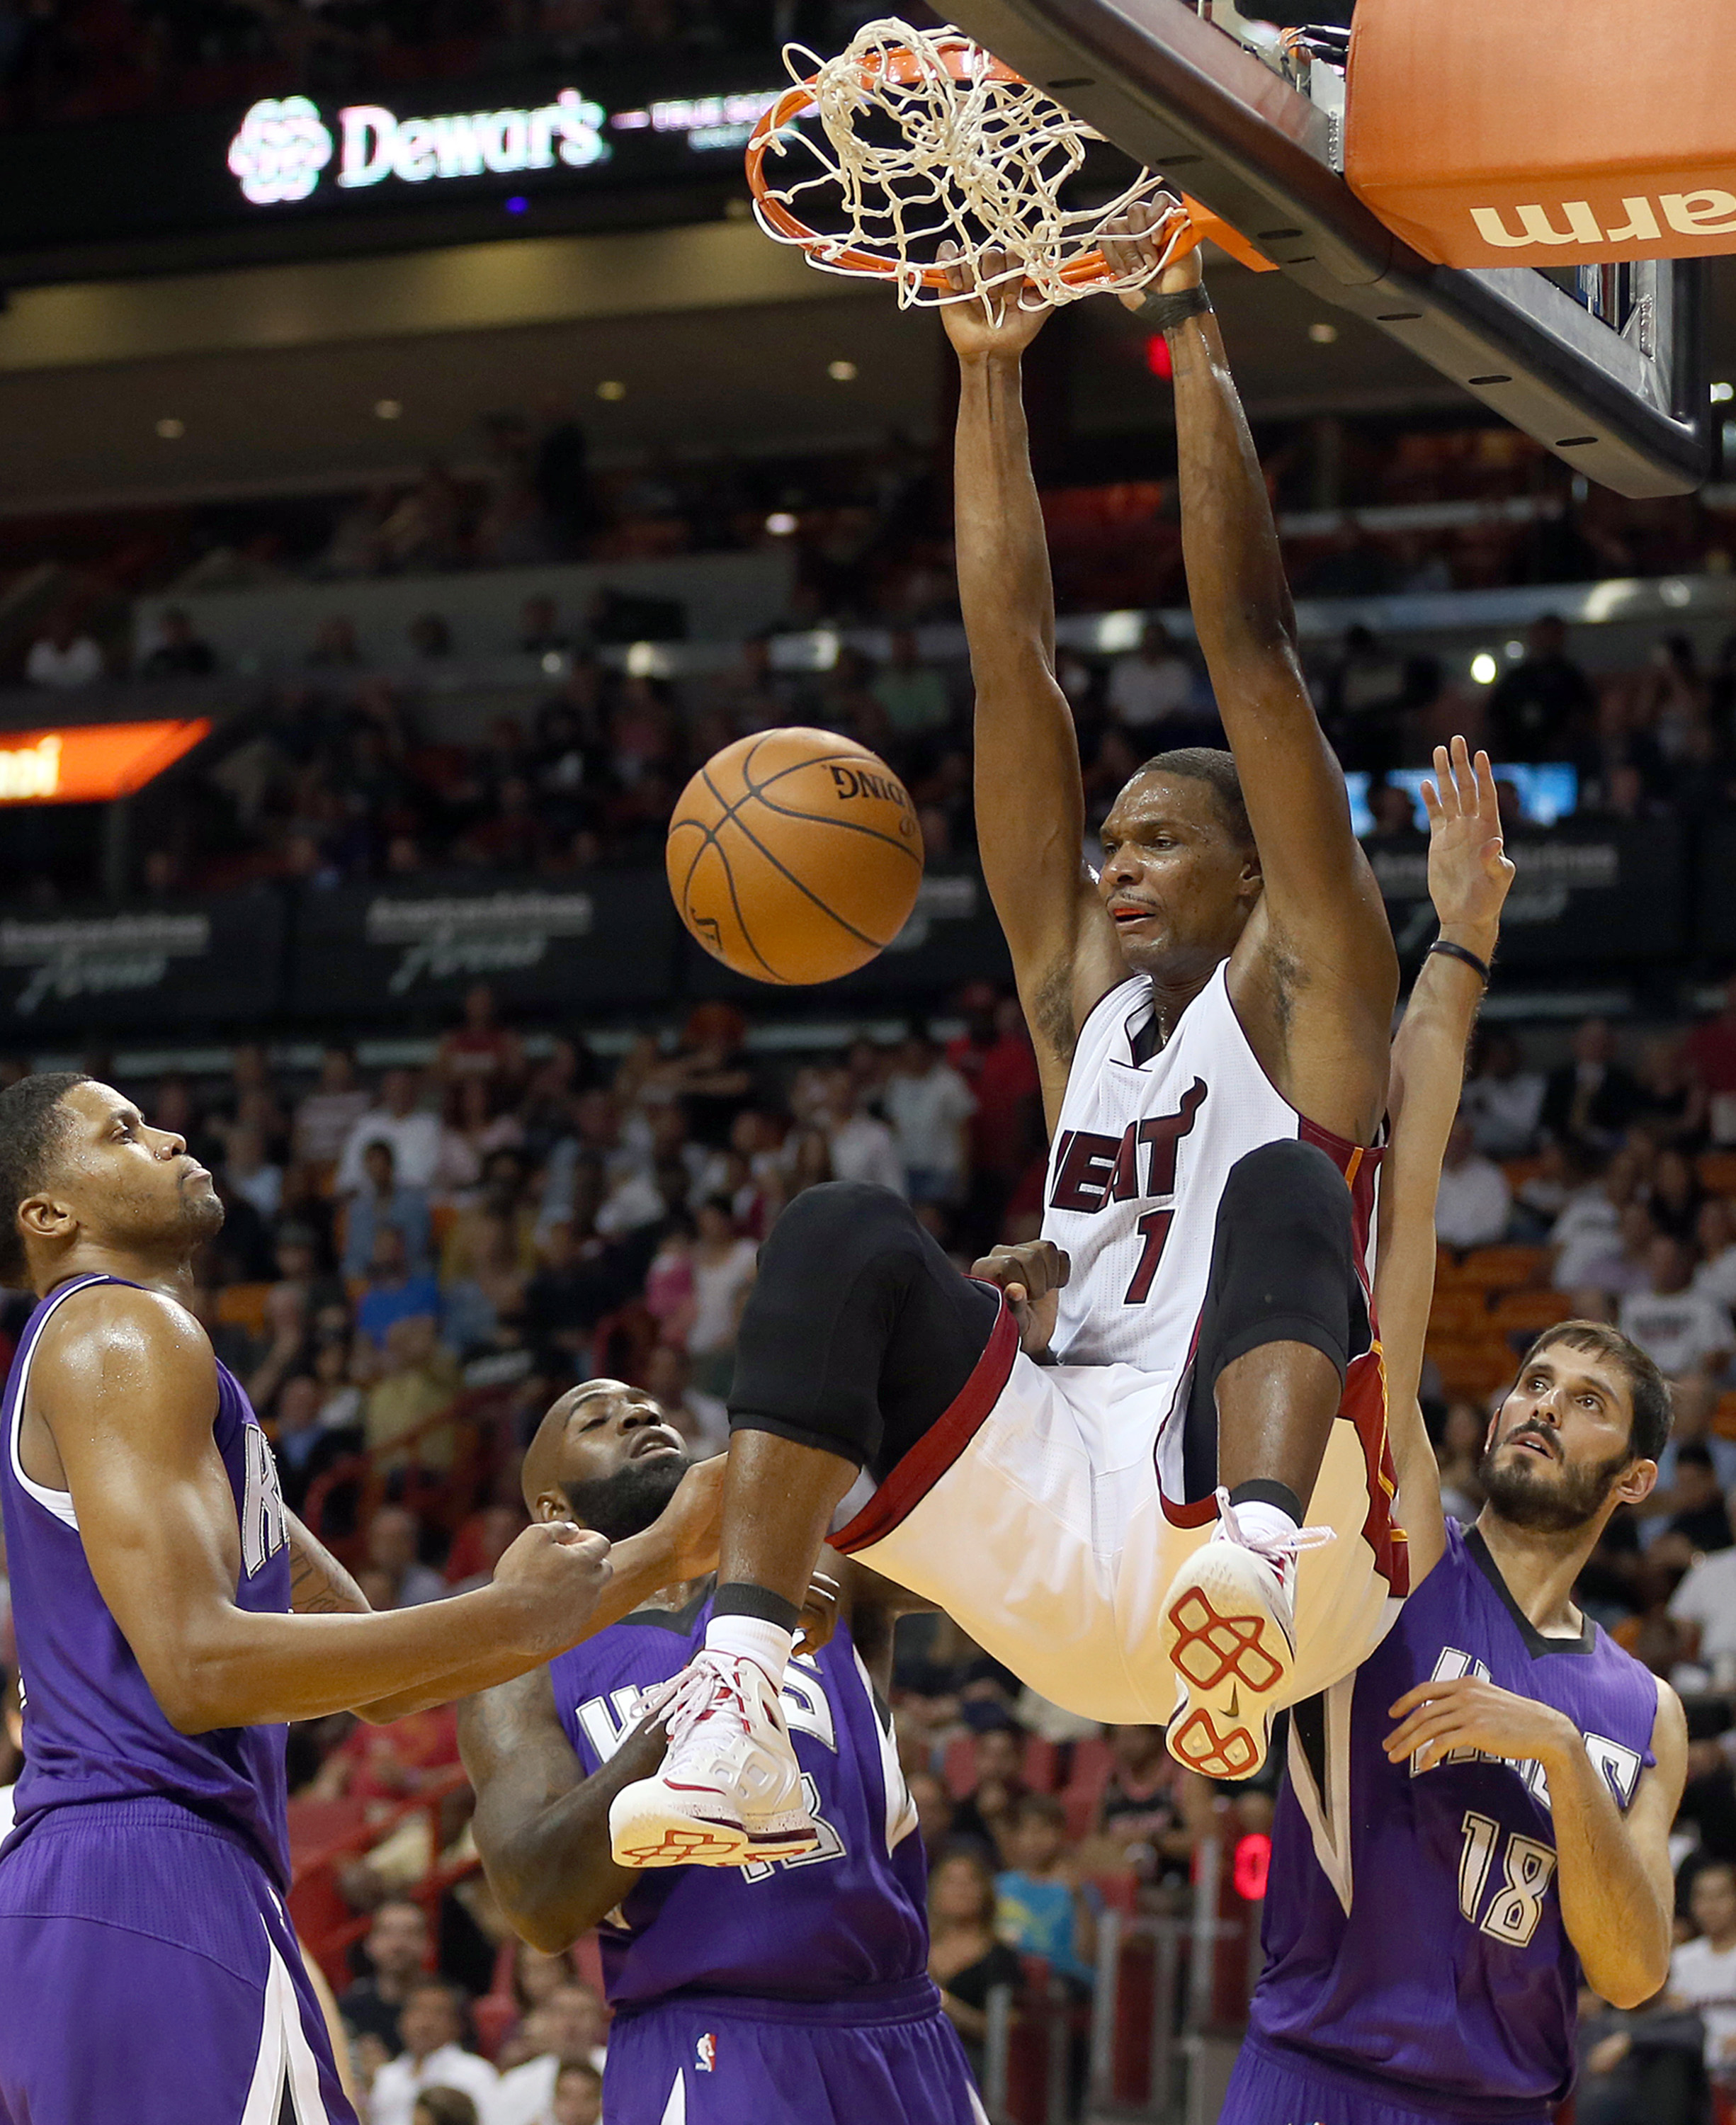 The Miami Heat's Chris Bosh dunks against the Sacramento Kings', from left, Rudy Gay, Quincy Acy, and Omri Cassp, in the second quarter at AmericanAirlines Arena in Miami on Thursday, Nov. 19, 2015.